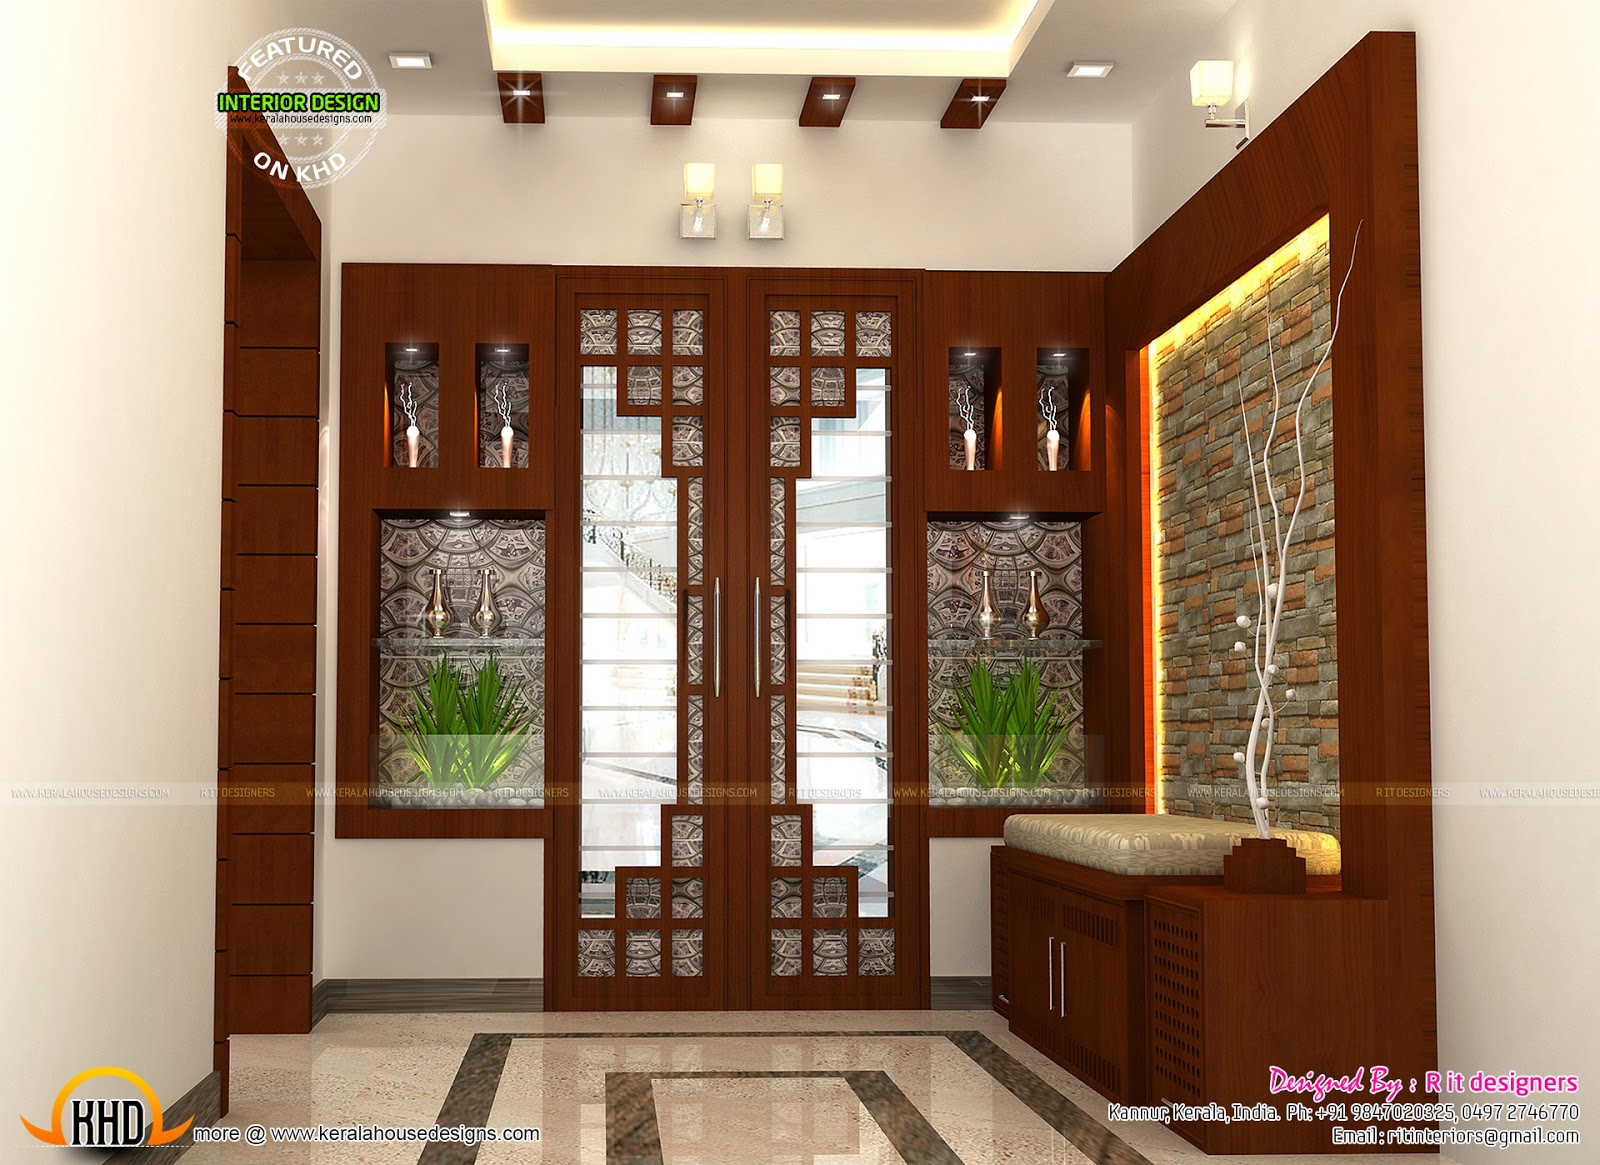 Home Interior Design Ideas Kerala: Interior Decors By R It Designers